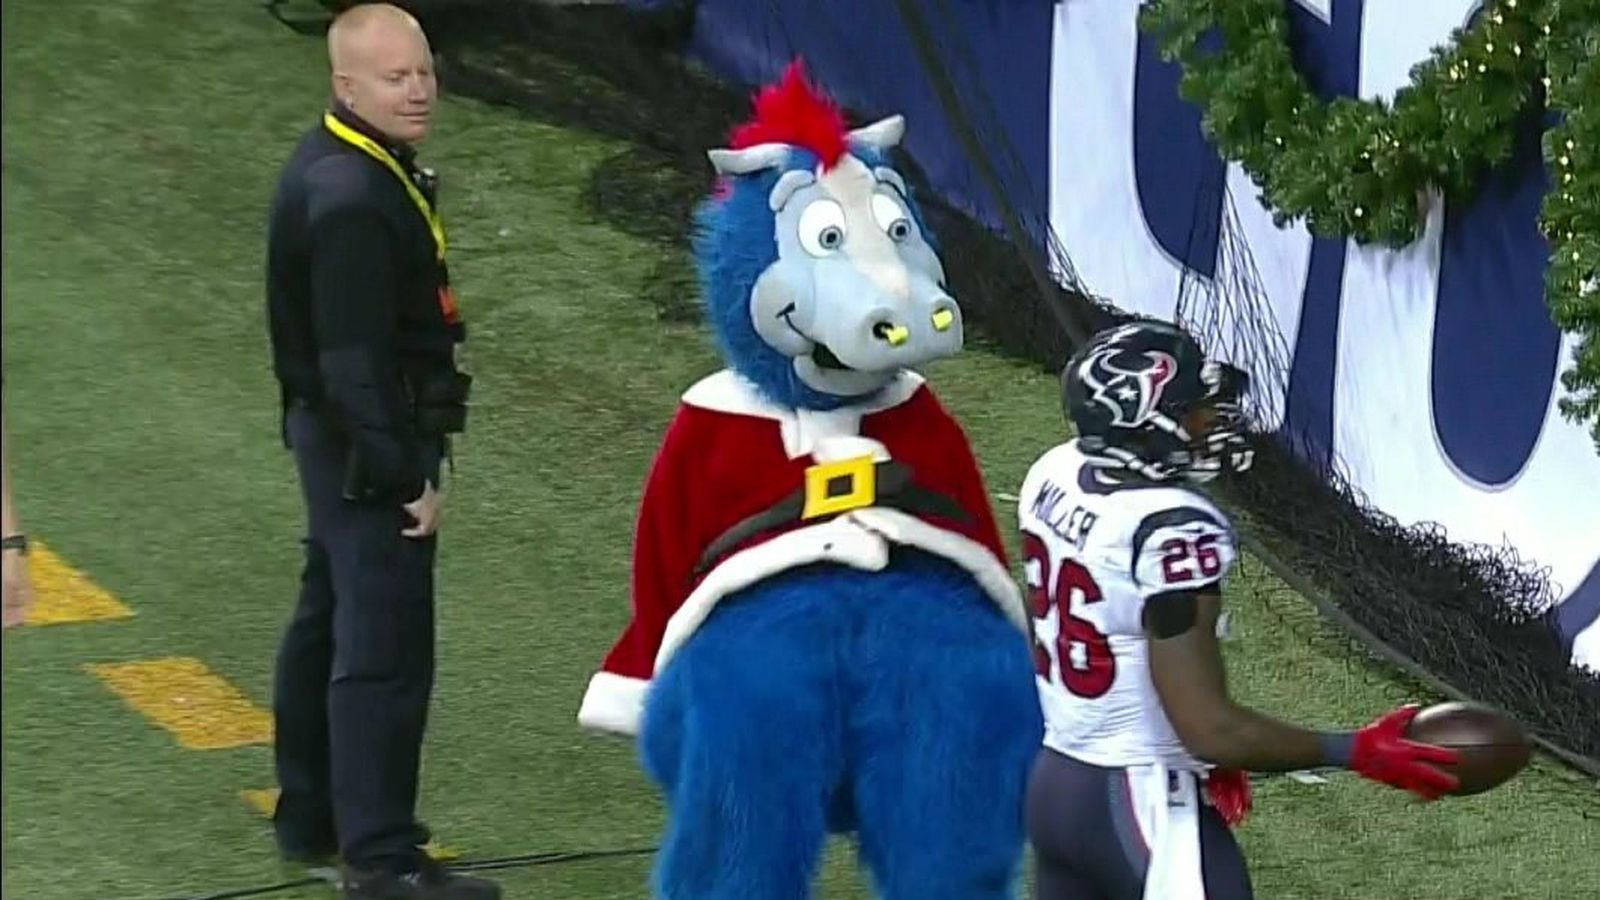 Colts mascot is using pelvic thrusts to intimidate the